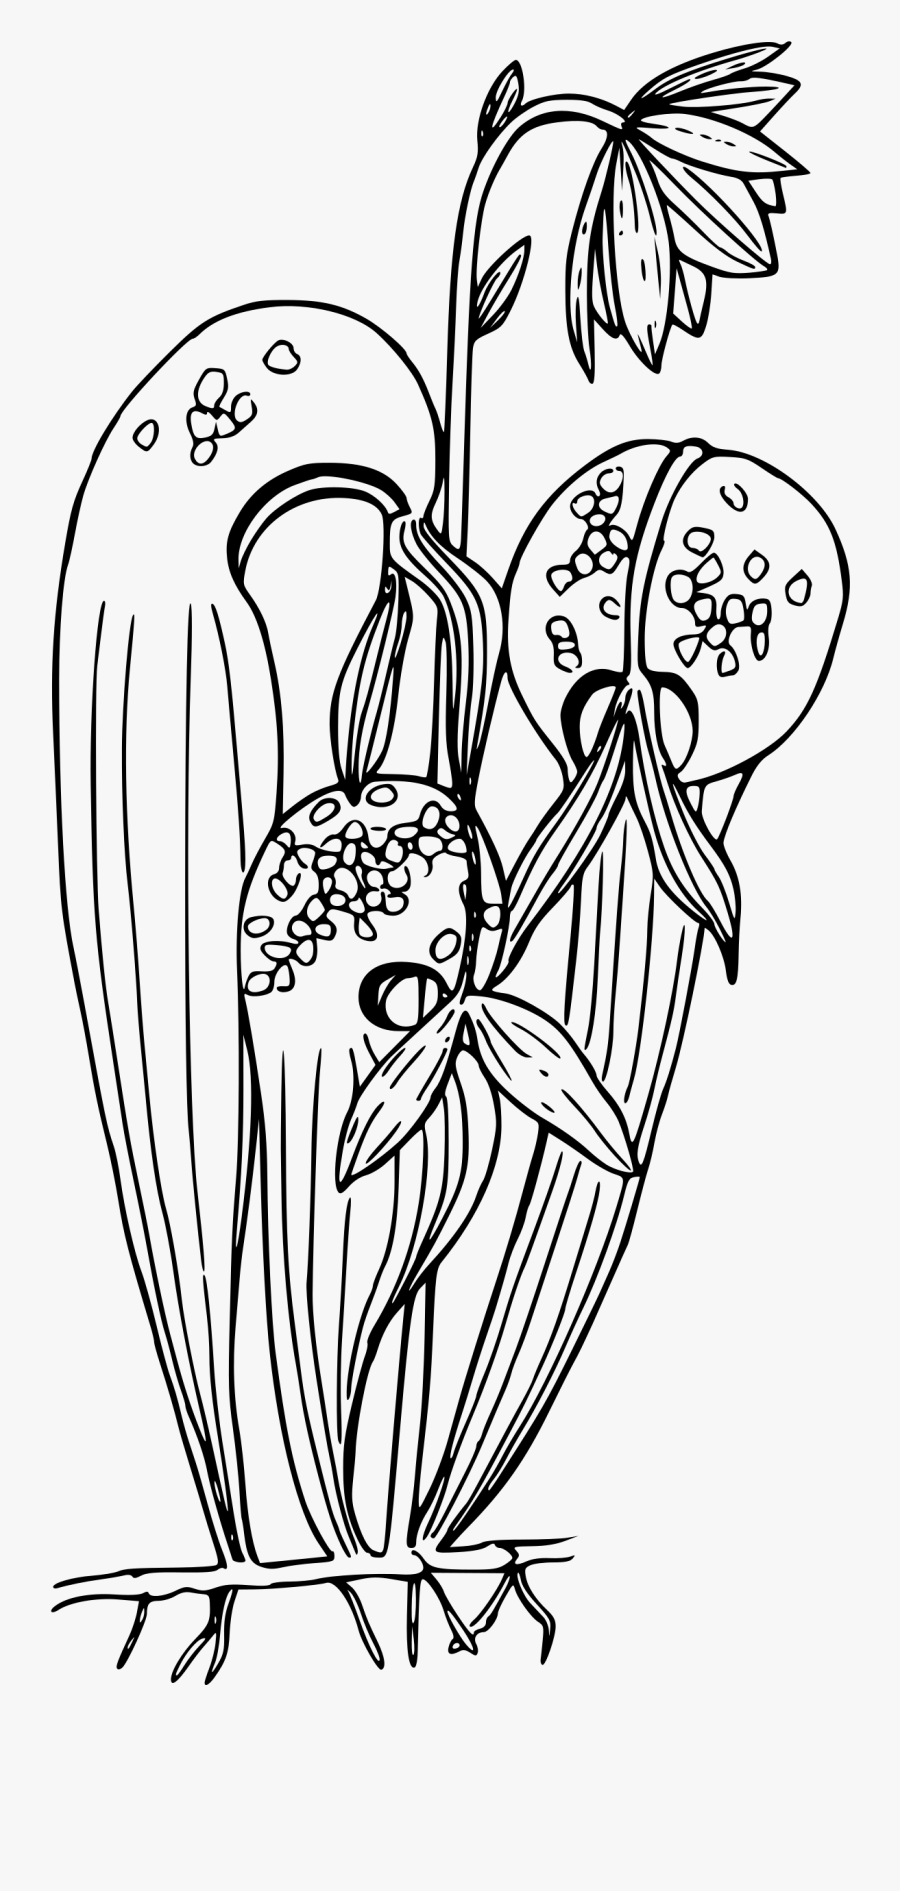 Graphic Library California Clipart Black And White - Pitcher Plant Coloring Page, Transparent Clipart